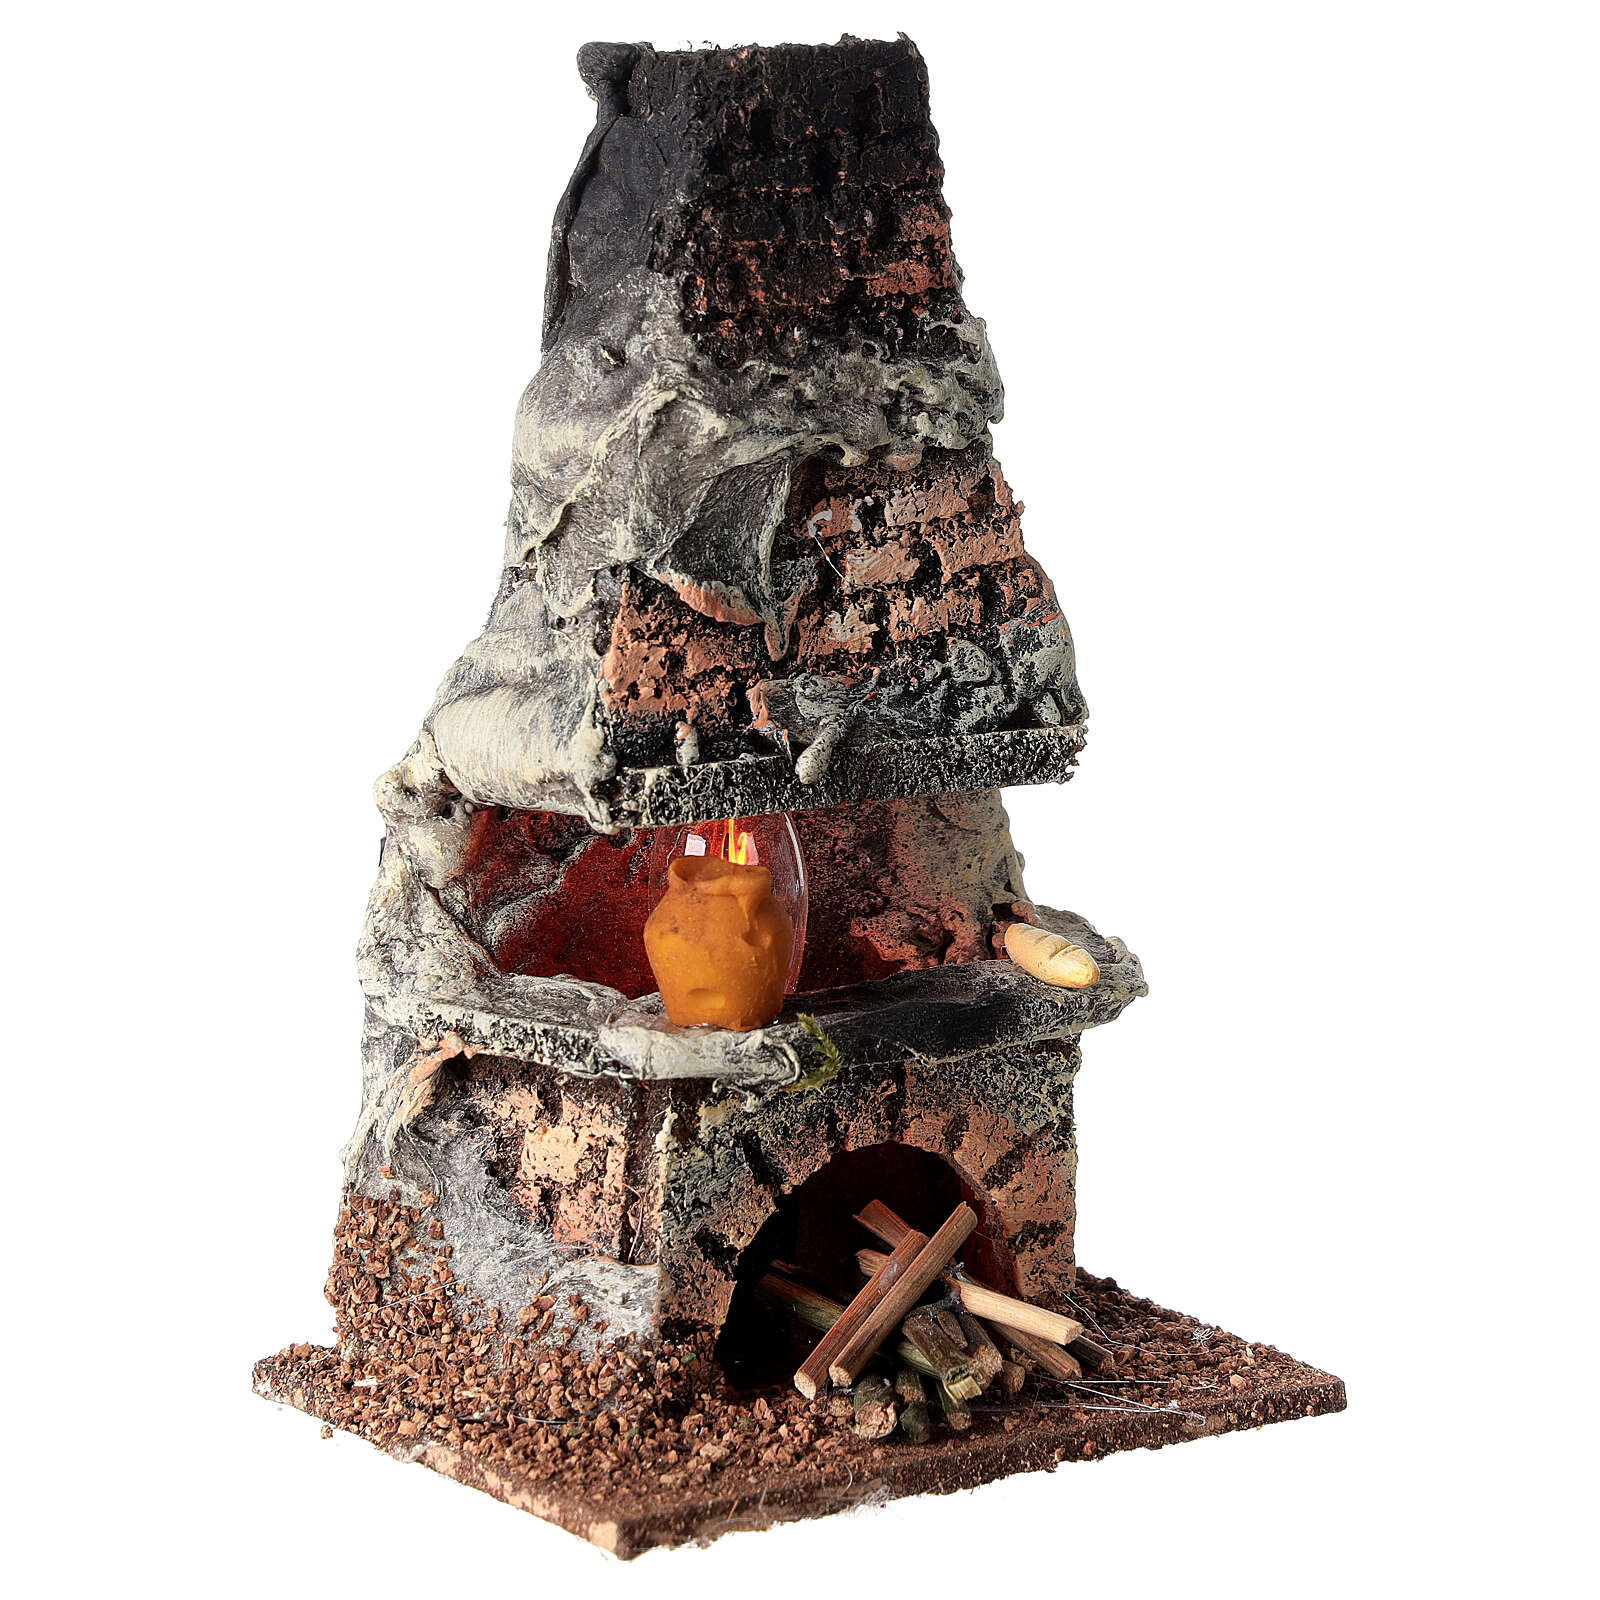 Oven with flame effect light for Nativity scene 8-10 cm 4